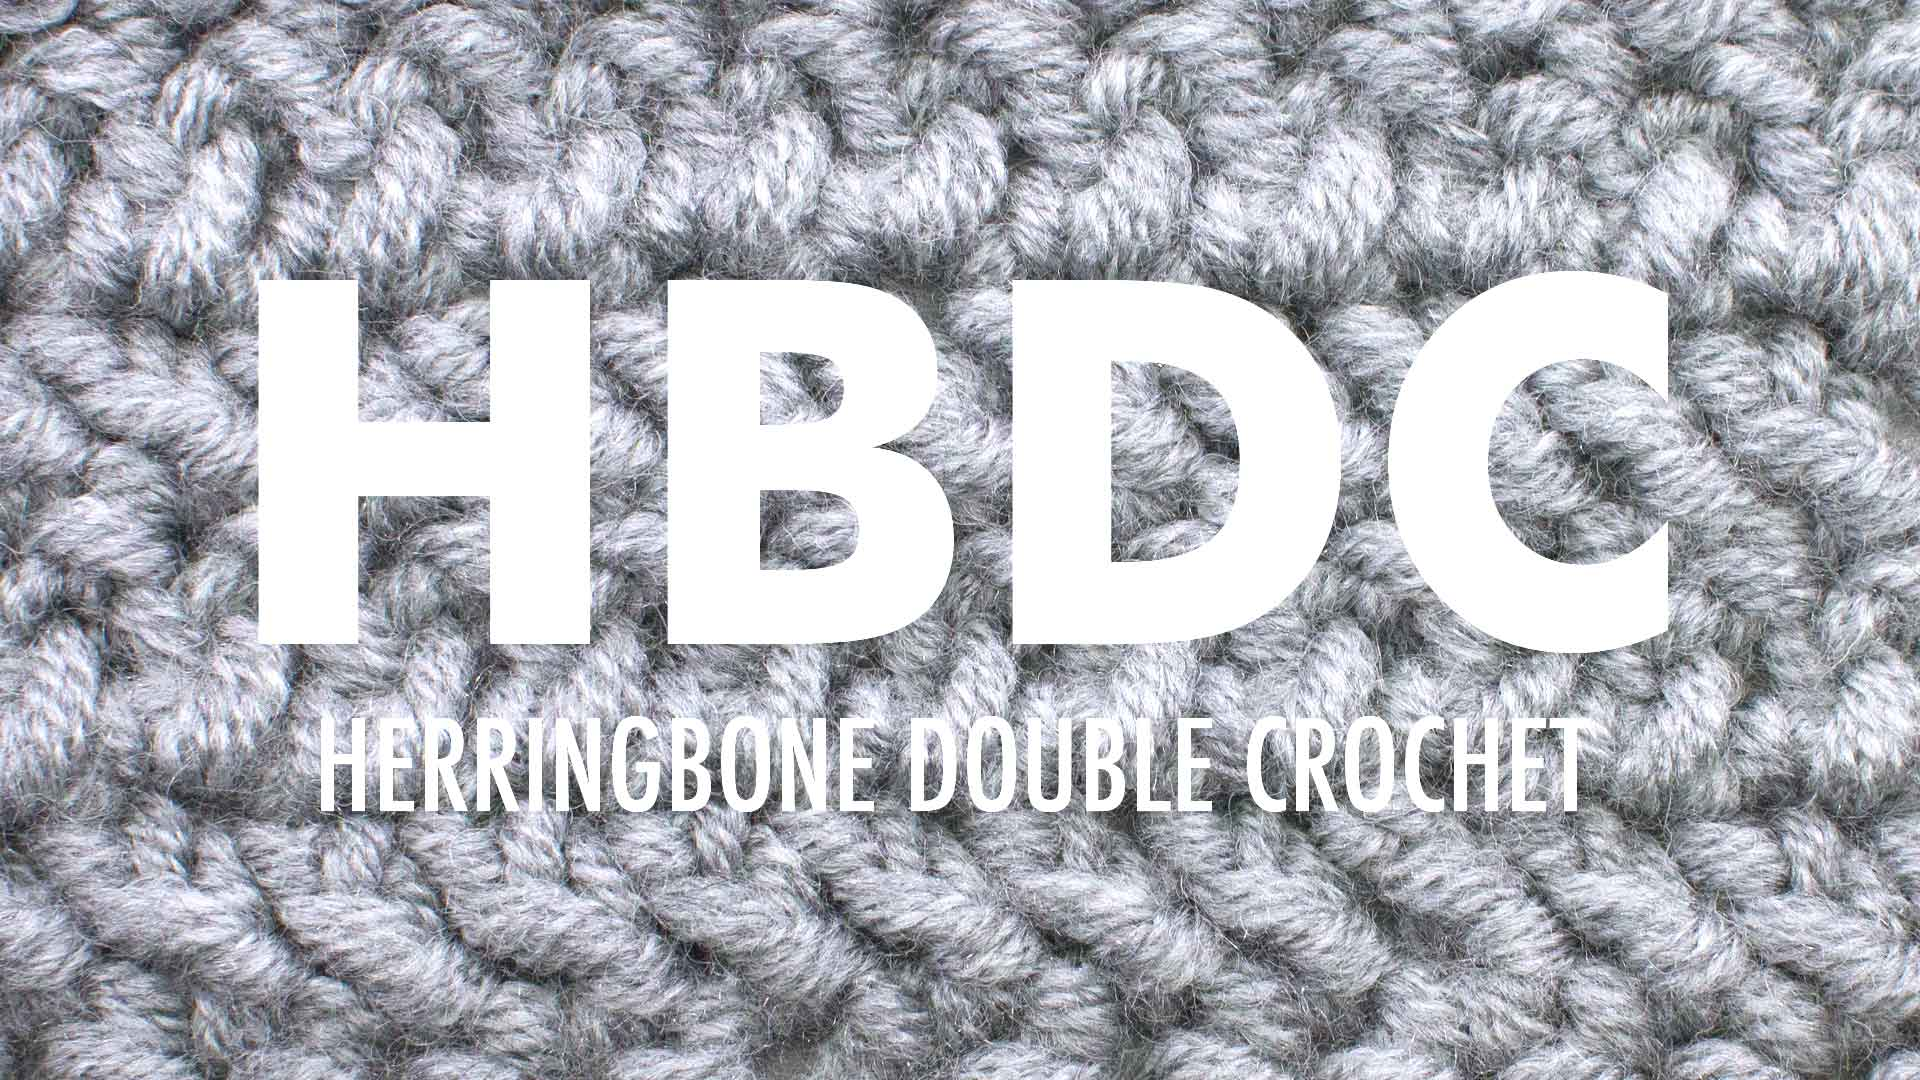 HBDC-Featured